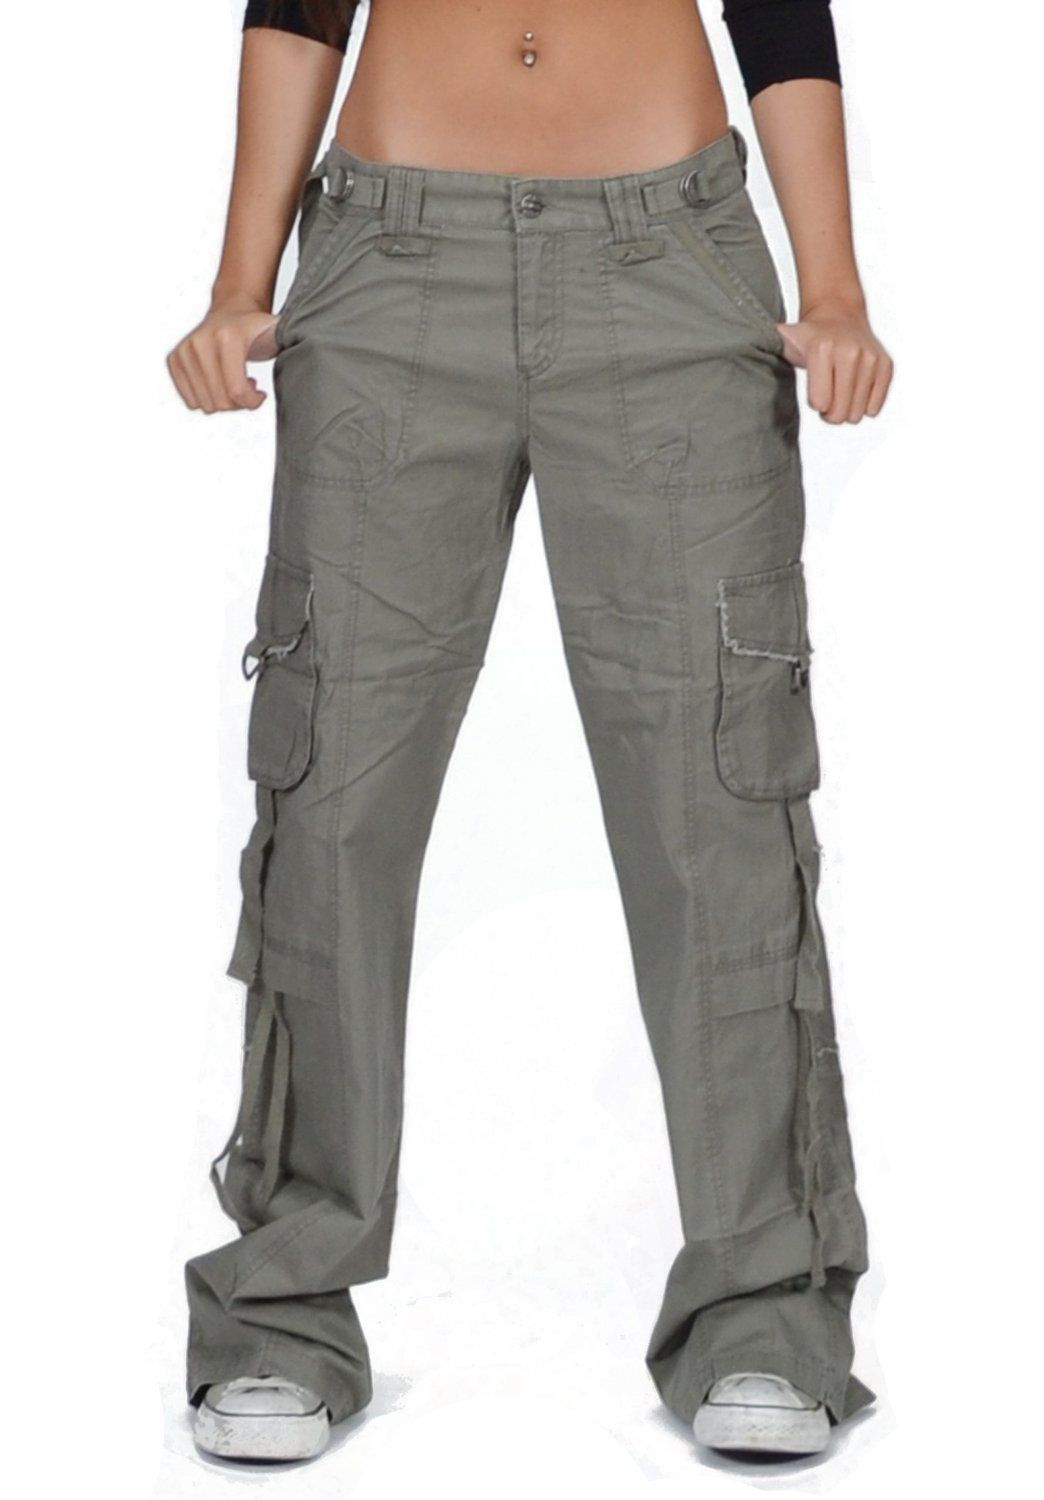 Jetlag Victoria Military Pocket Women's Long Cargo Pants in Khaki ...